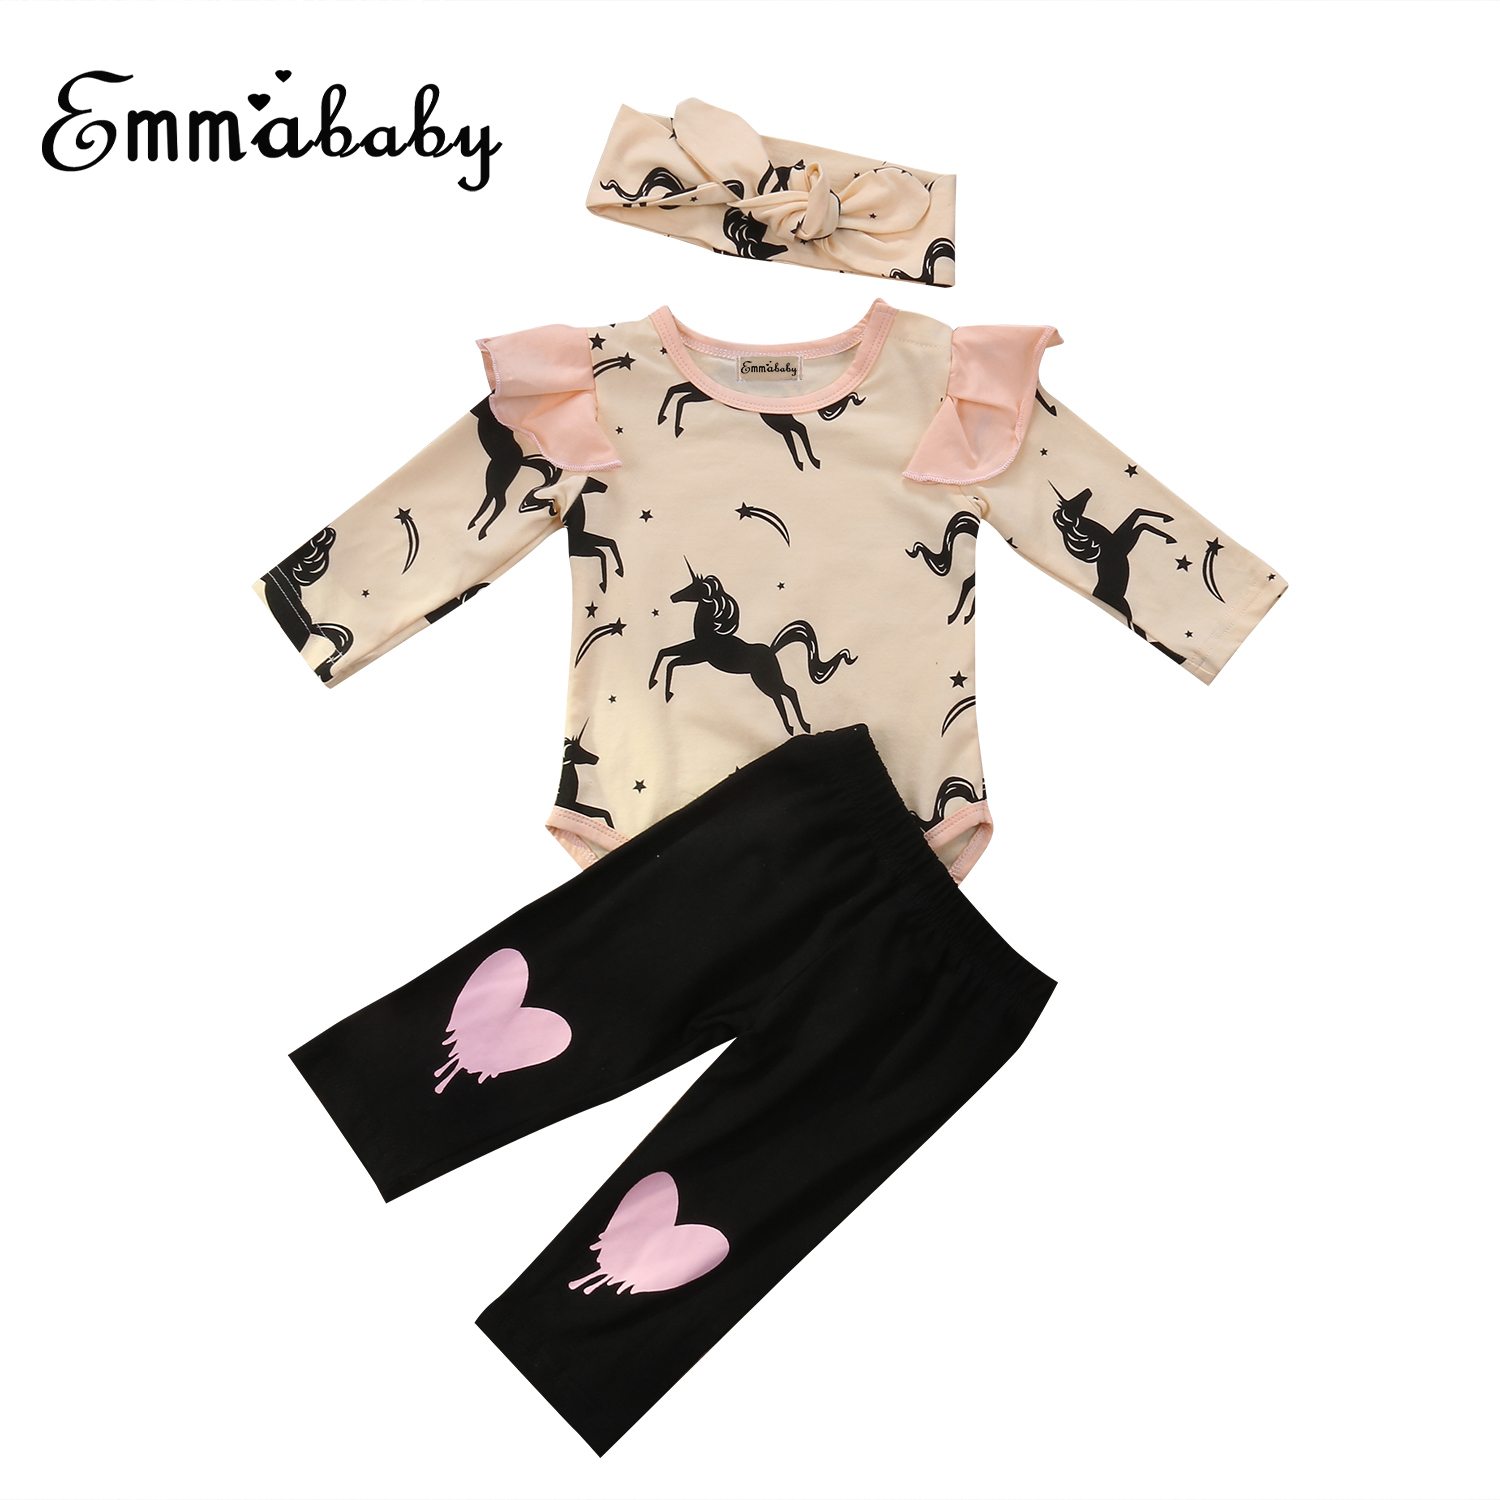 Emmababy 3PCS Infant Baby Kids Girls Horse Printed Long Sleeve Cotton Jumpsuit Bodysuit + Heart Long Pants + Headband Outfit Set